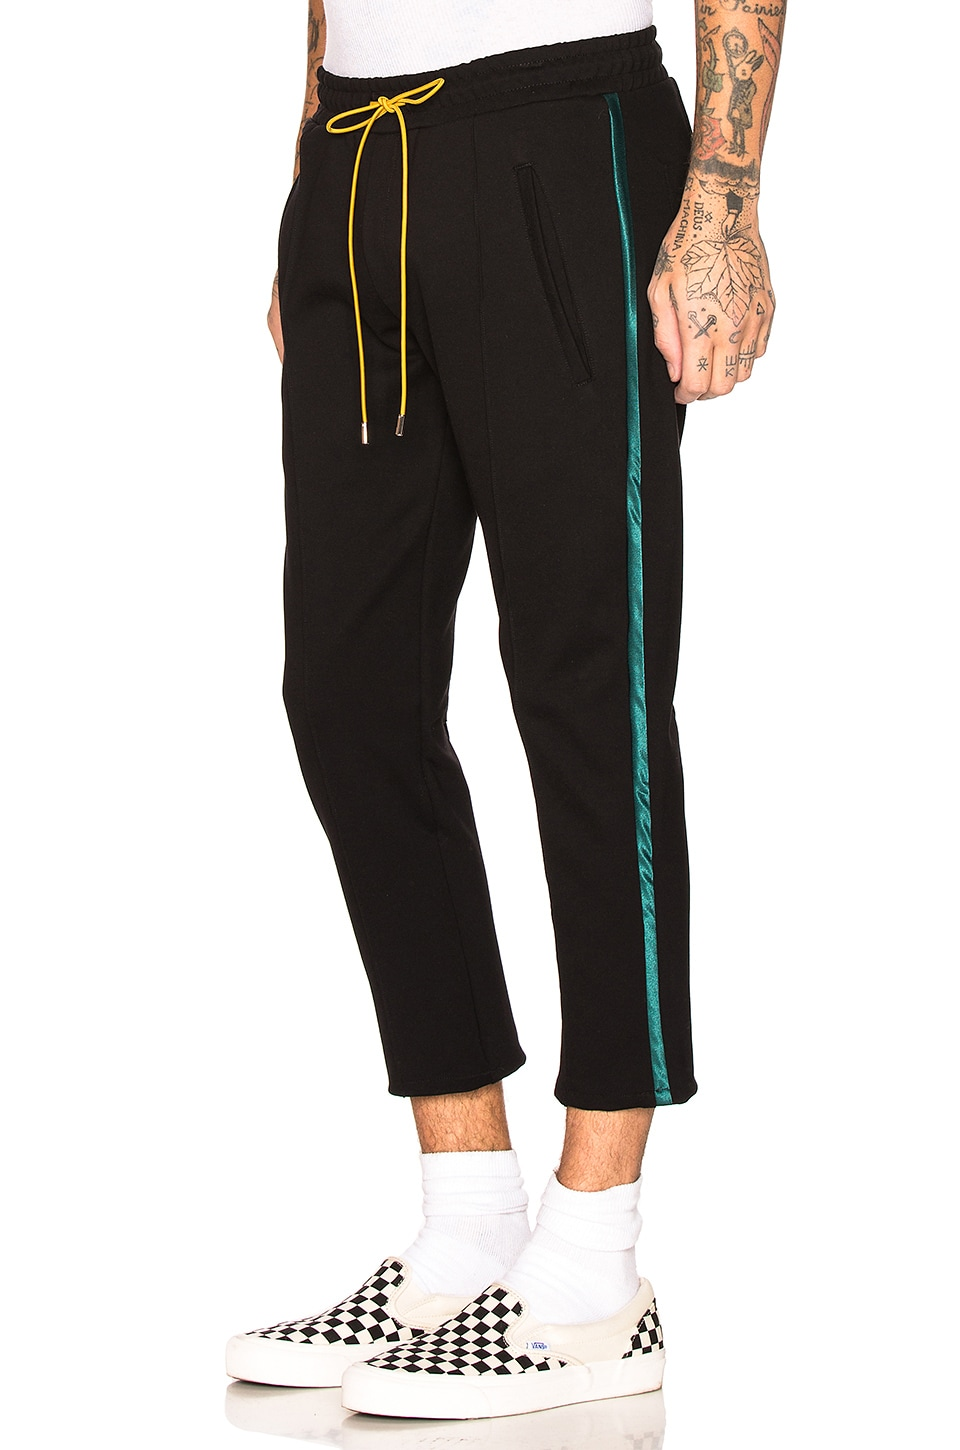 Rhude Traxedo Pant in Black & Green